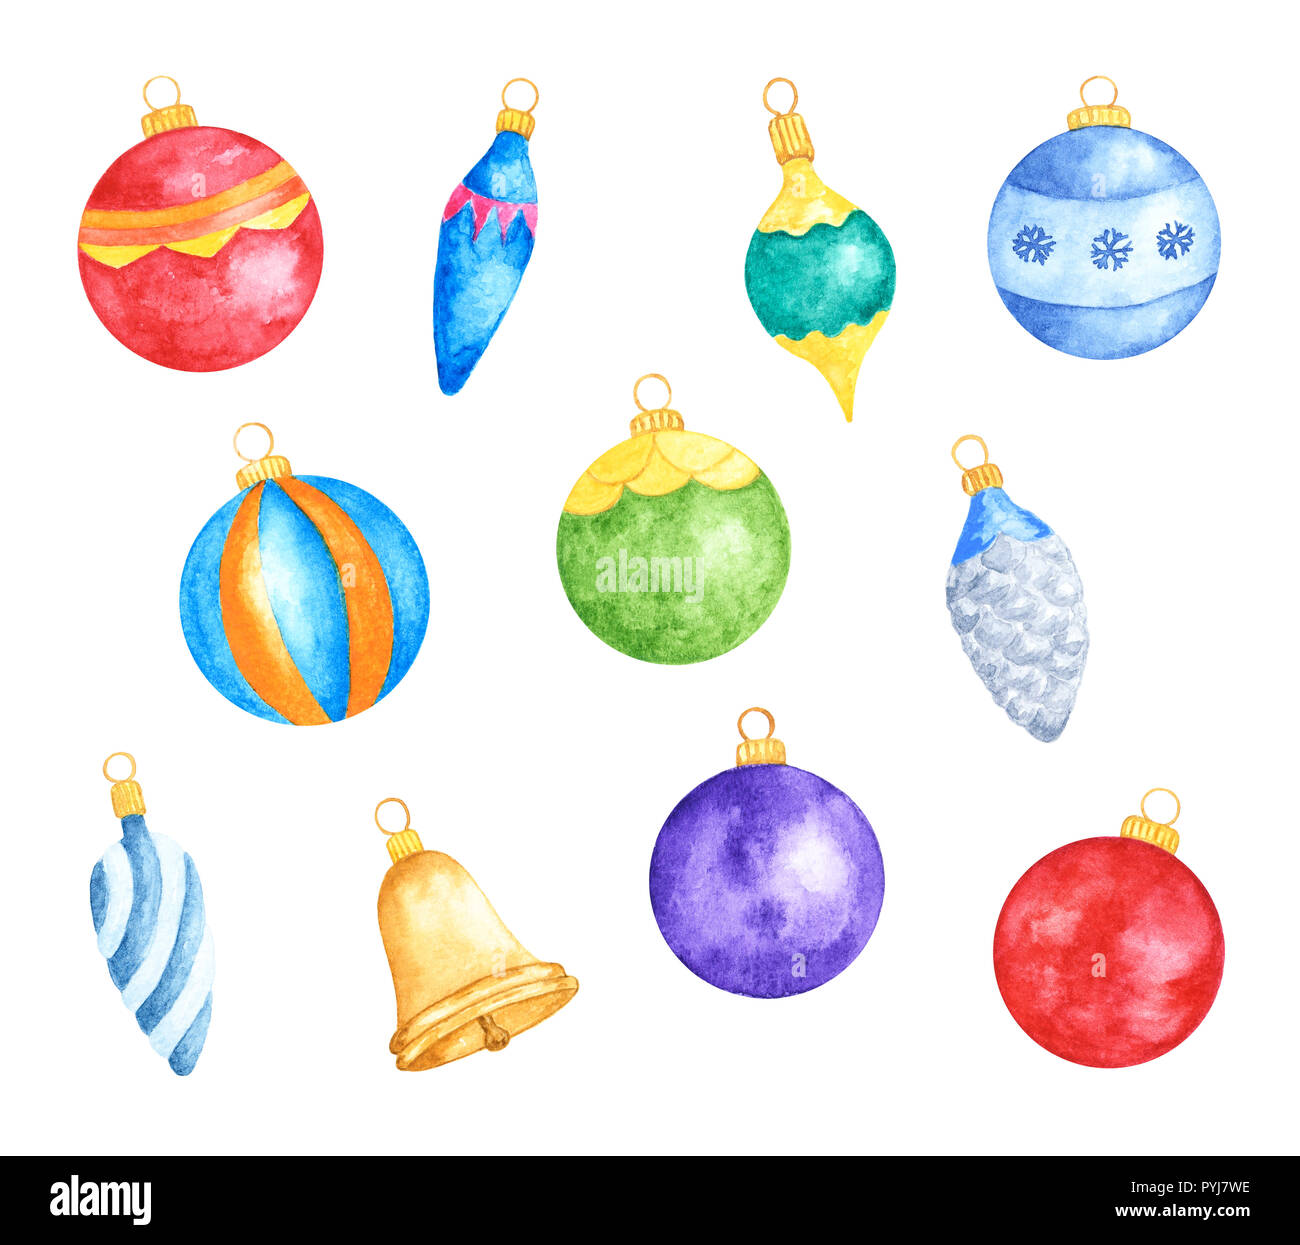 Set Of Various Colorful Christmas Tree Decorations Watercolor Hand Drawn And Painted Isolated On White Background Stock Photo Alamy